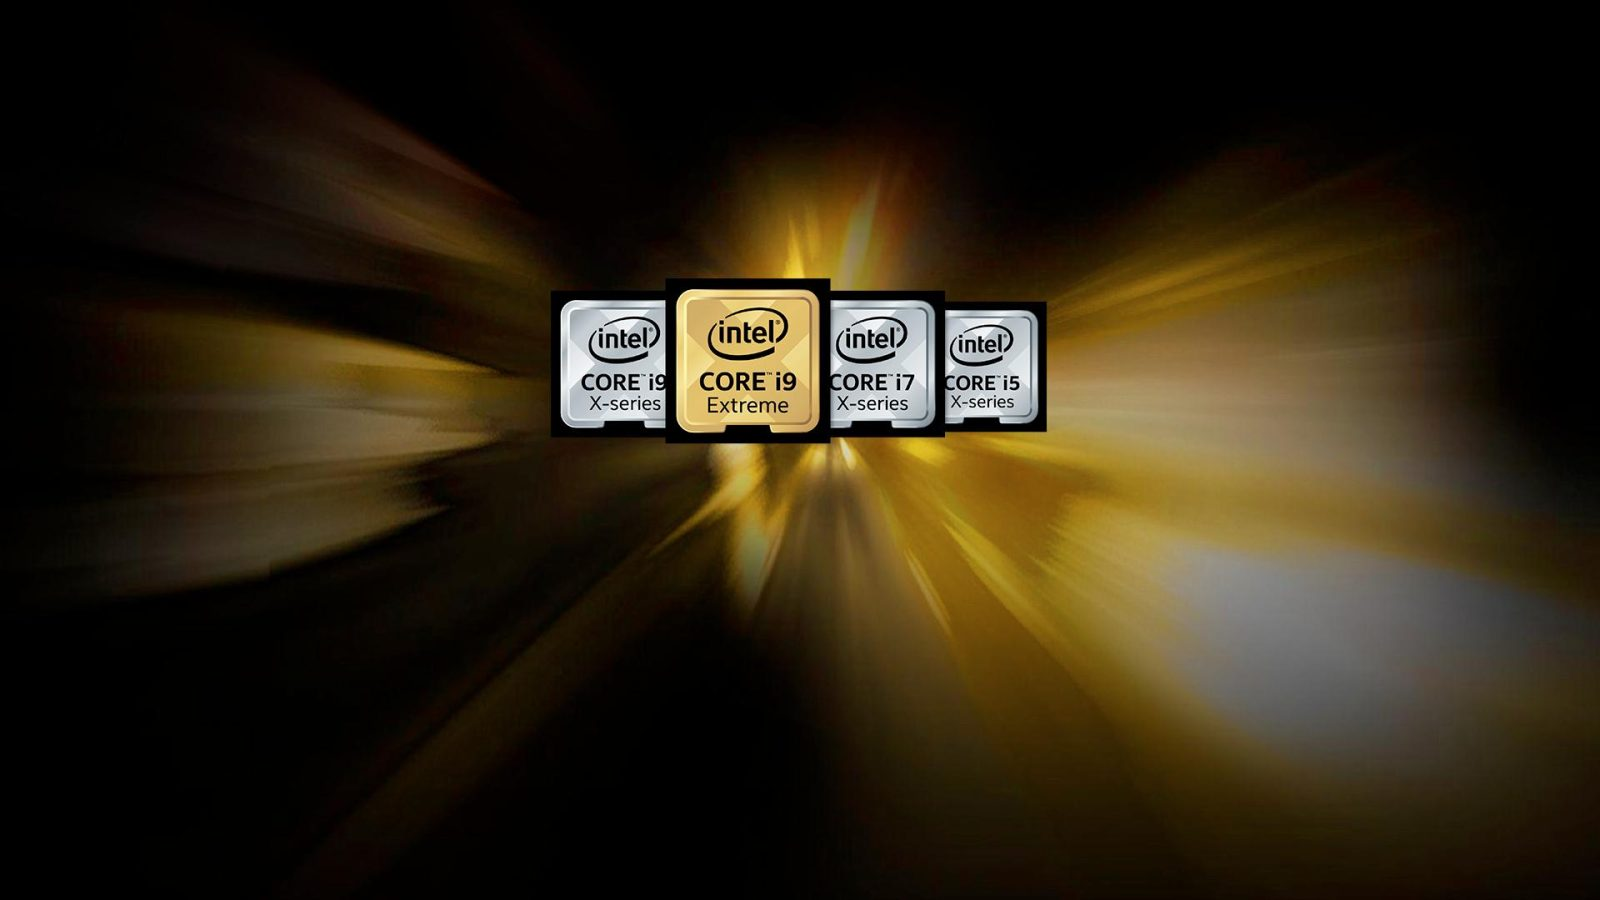 Intel unveils new 10nm Sunny Cove CPUs, possibly destined for future Macs